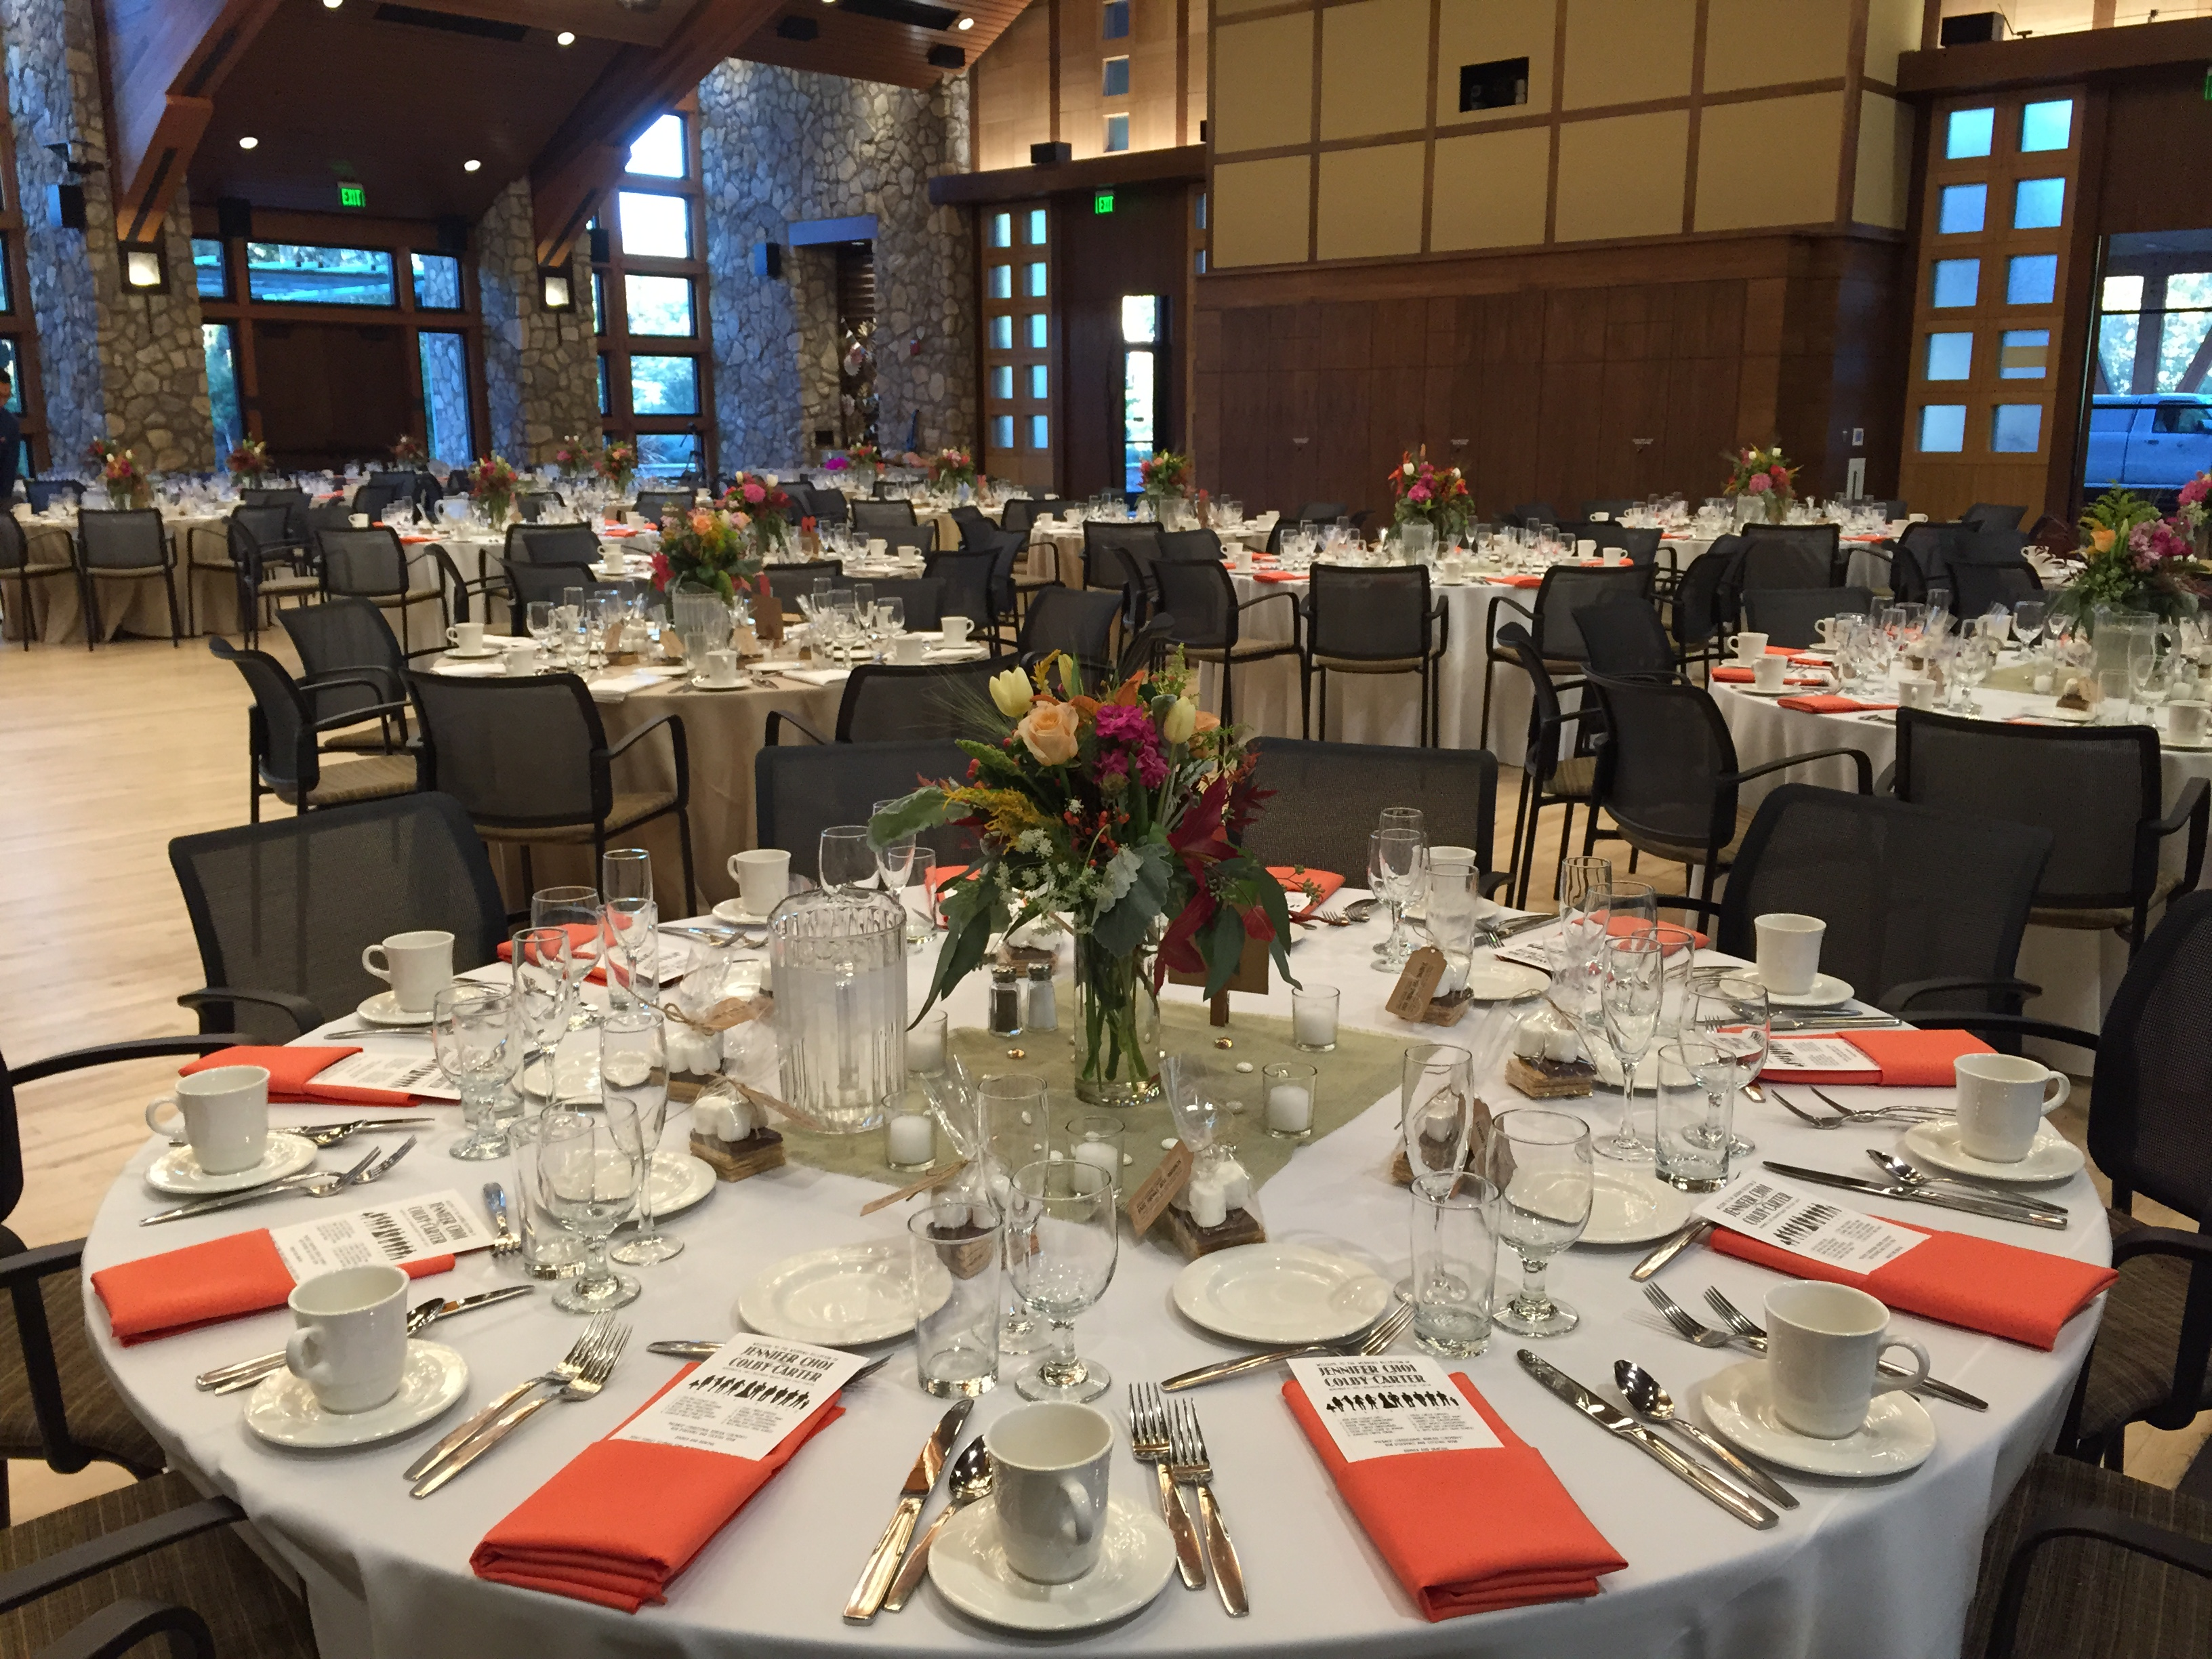 Rossmoor Event Center